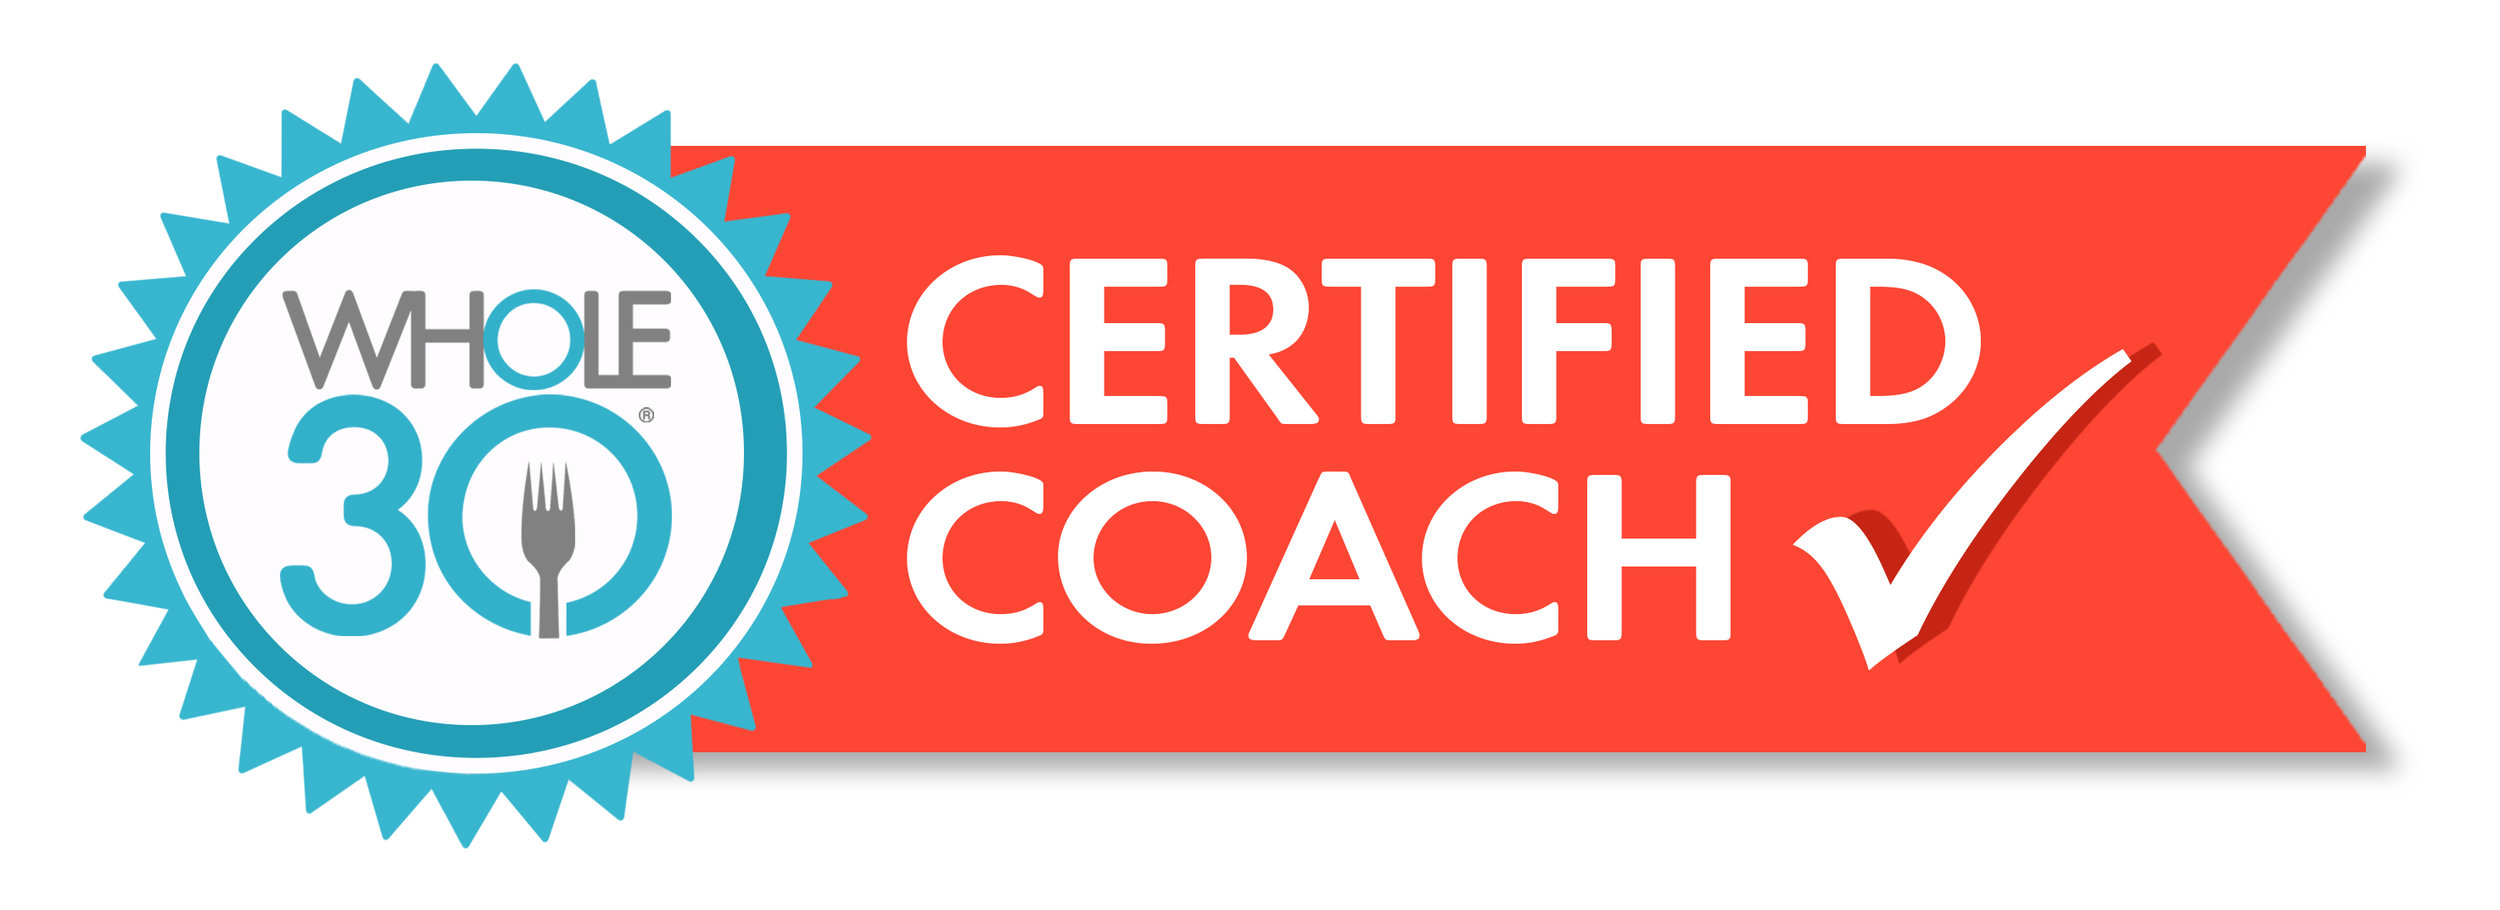 Coaching certified banner.jpg